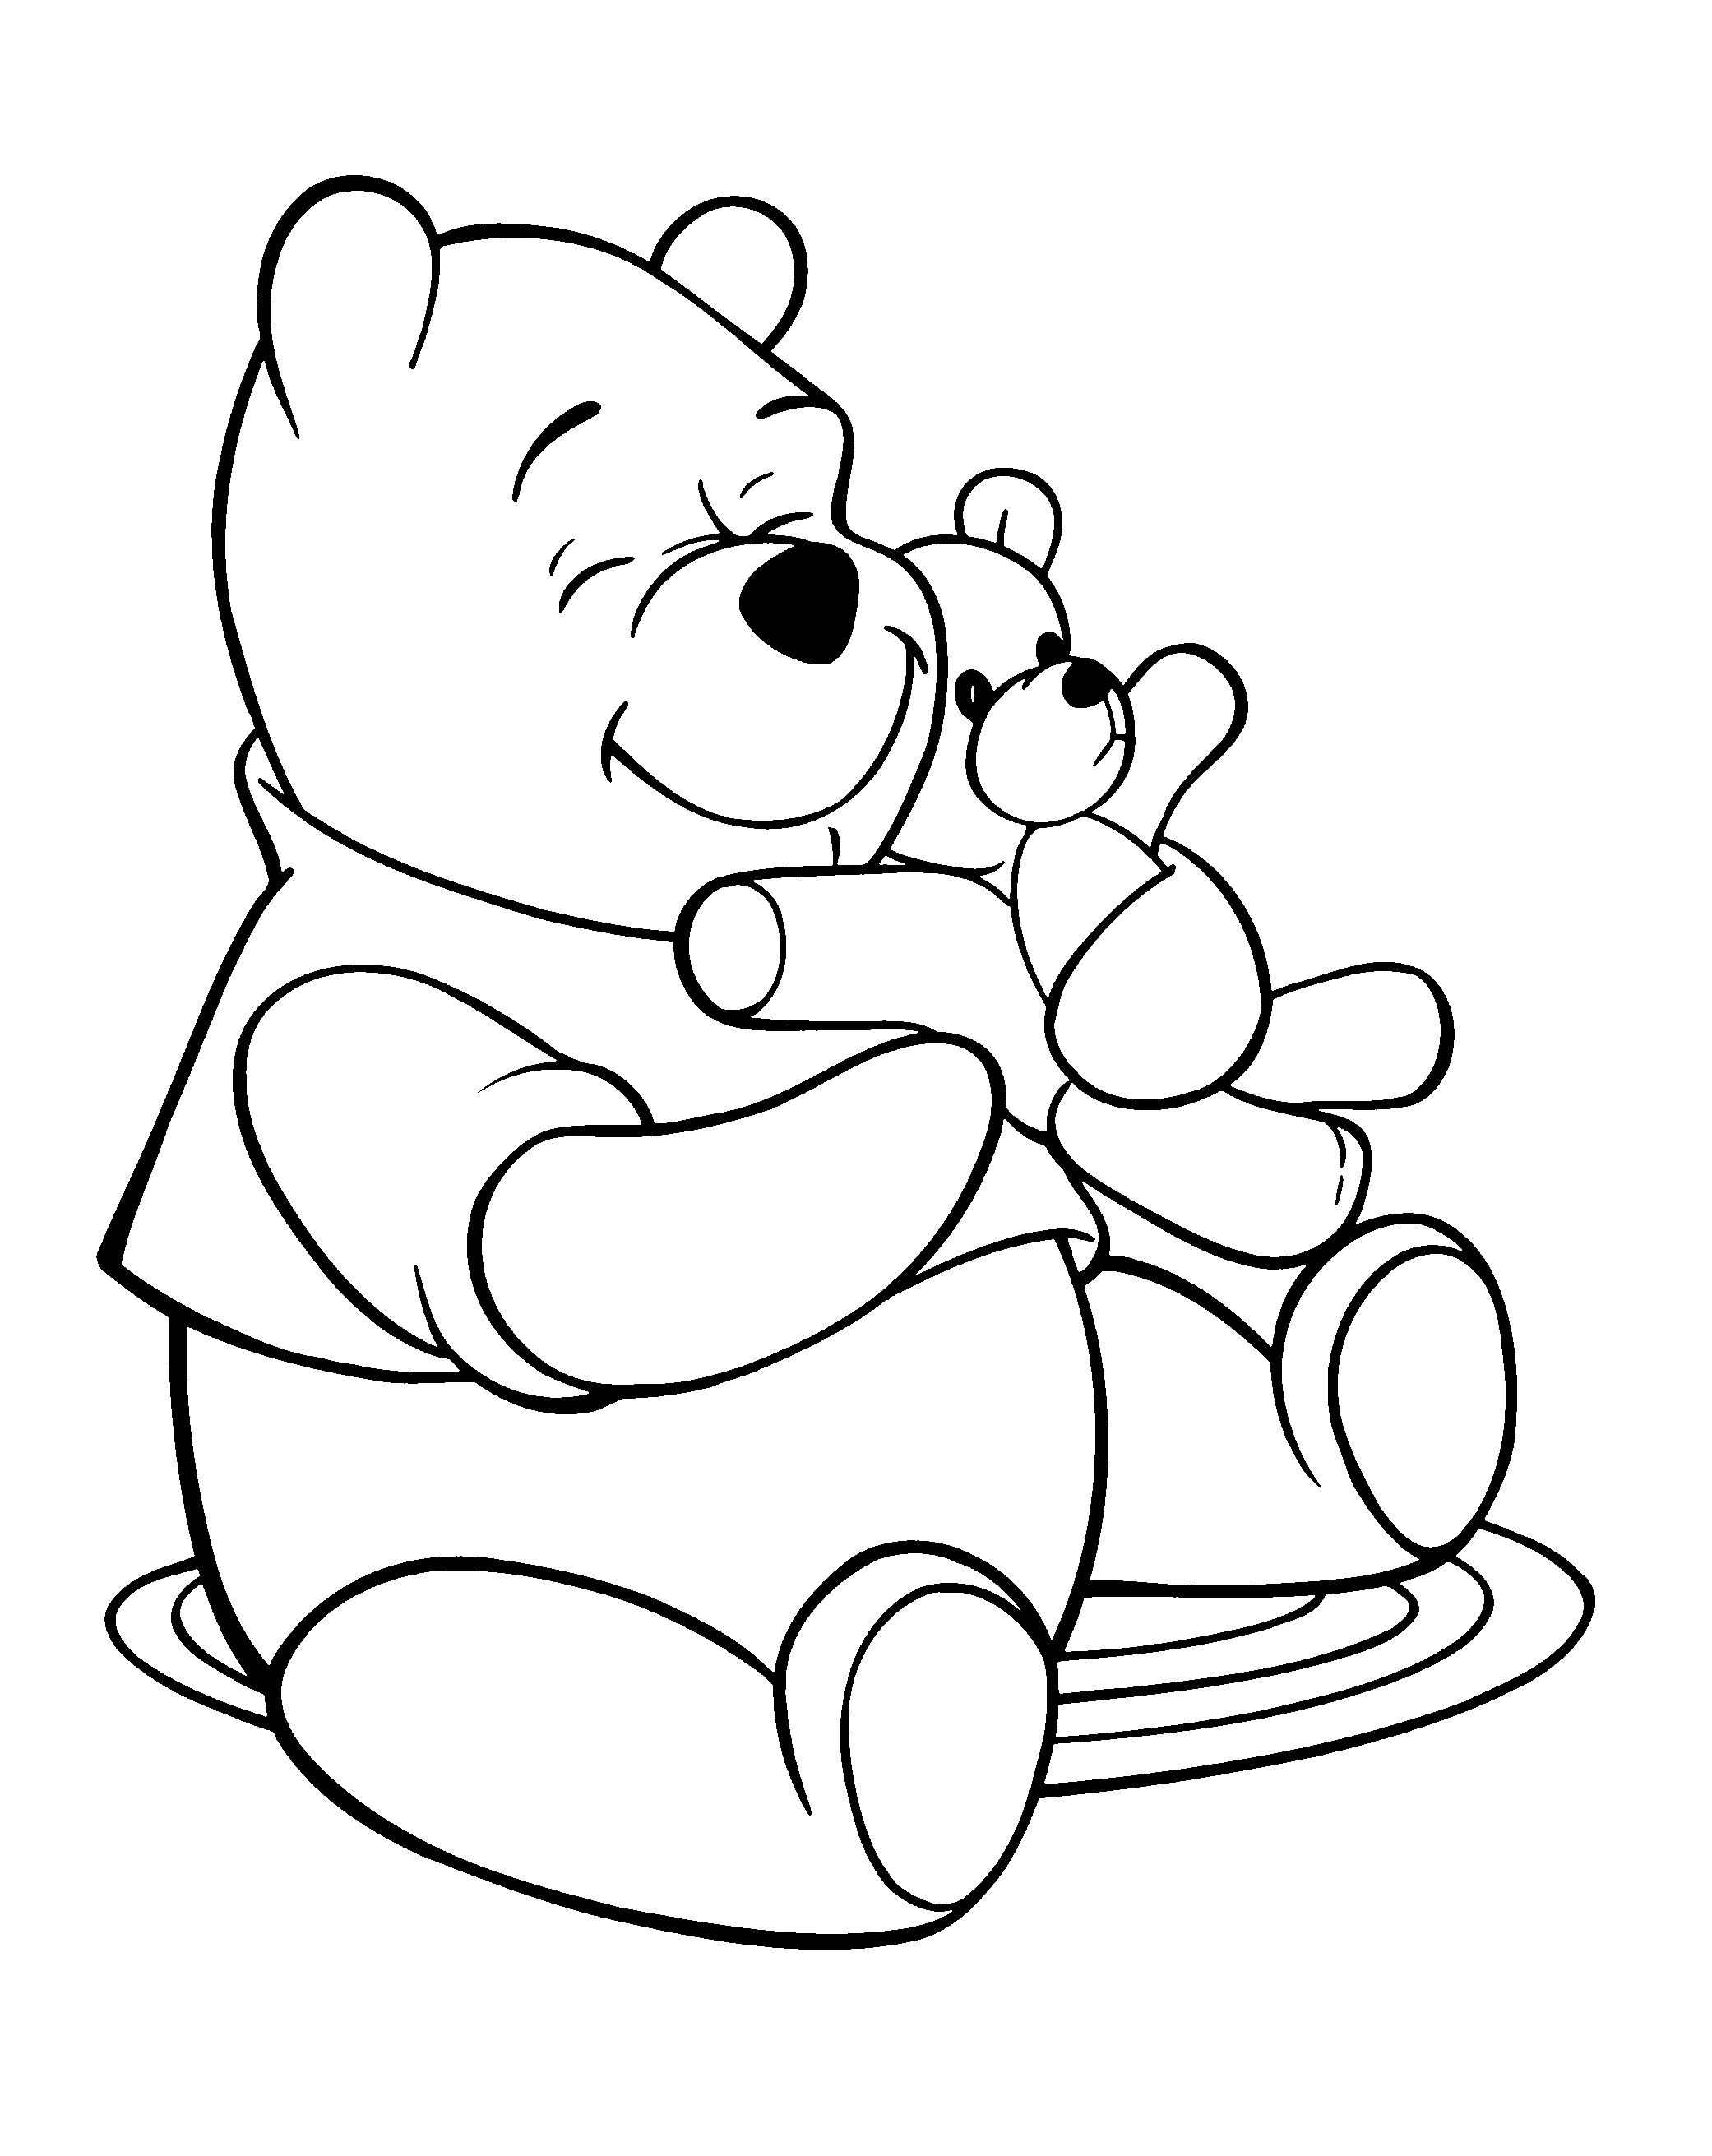 2082x2622 Bargain Teddy Bear Coloring Page